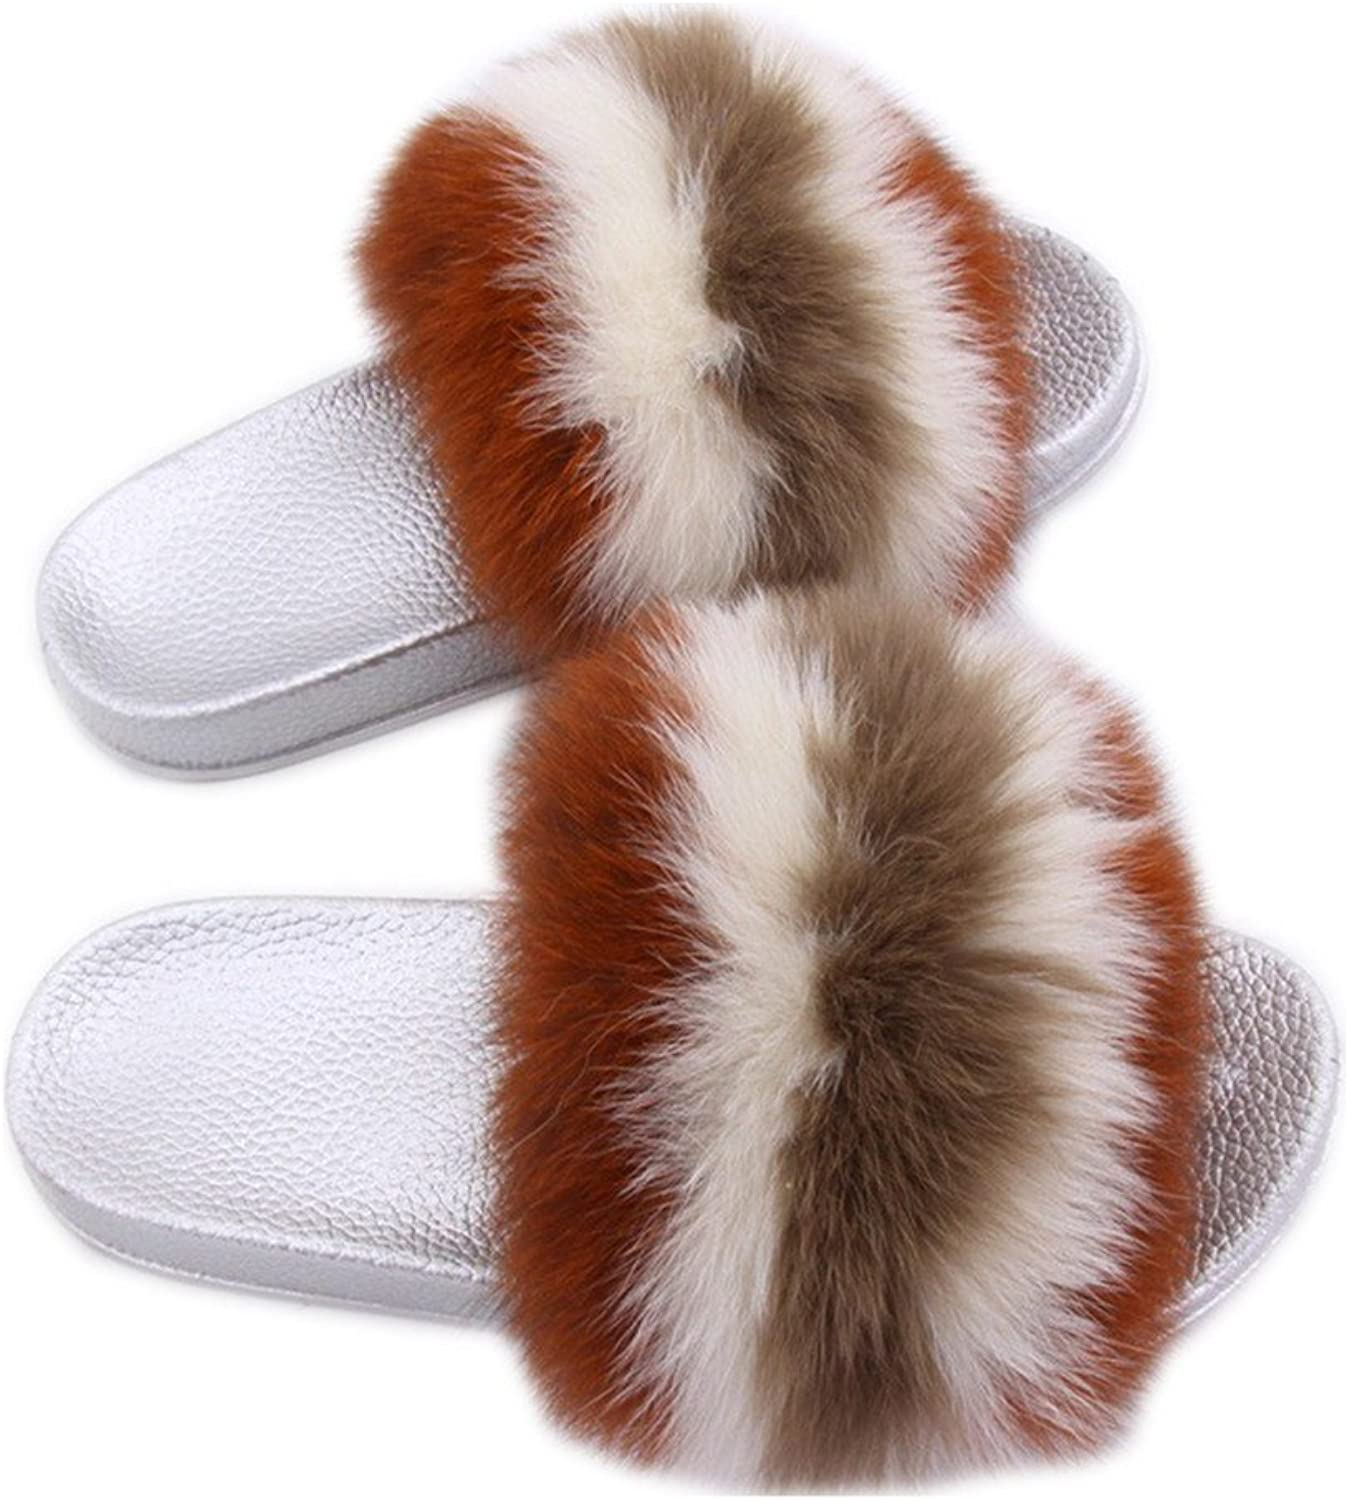 QMFUR Women Real Fox Fur Slippers Lady Fashion Multicolor Fur Black Glod Silver Sole Slipper True Fox Fur (9, Silver-C)